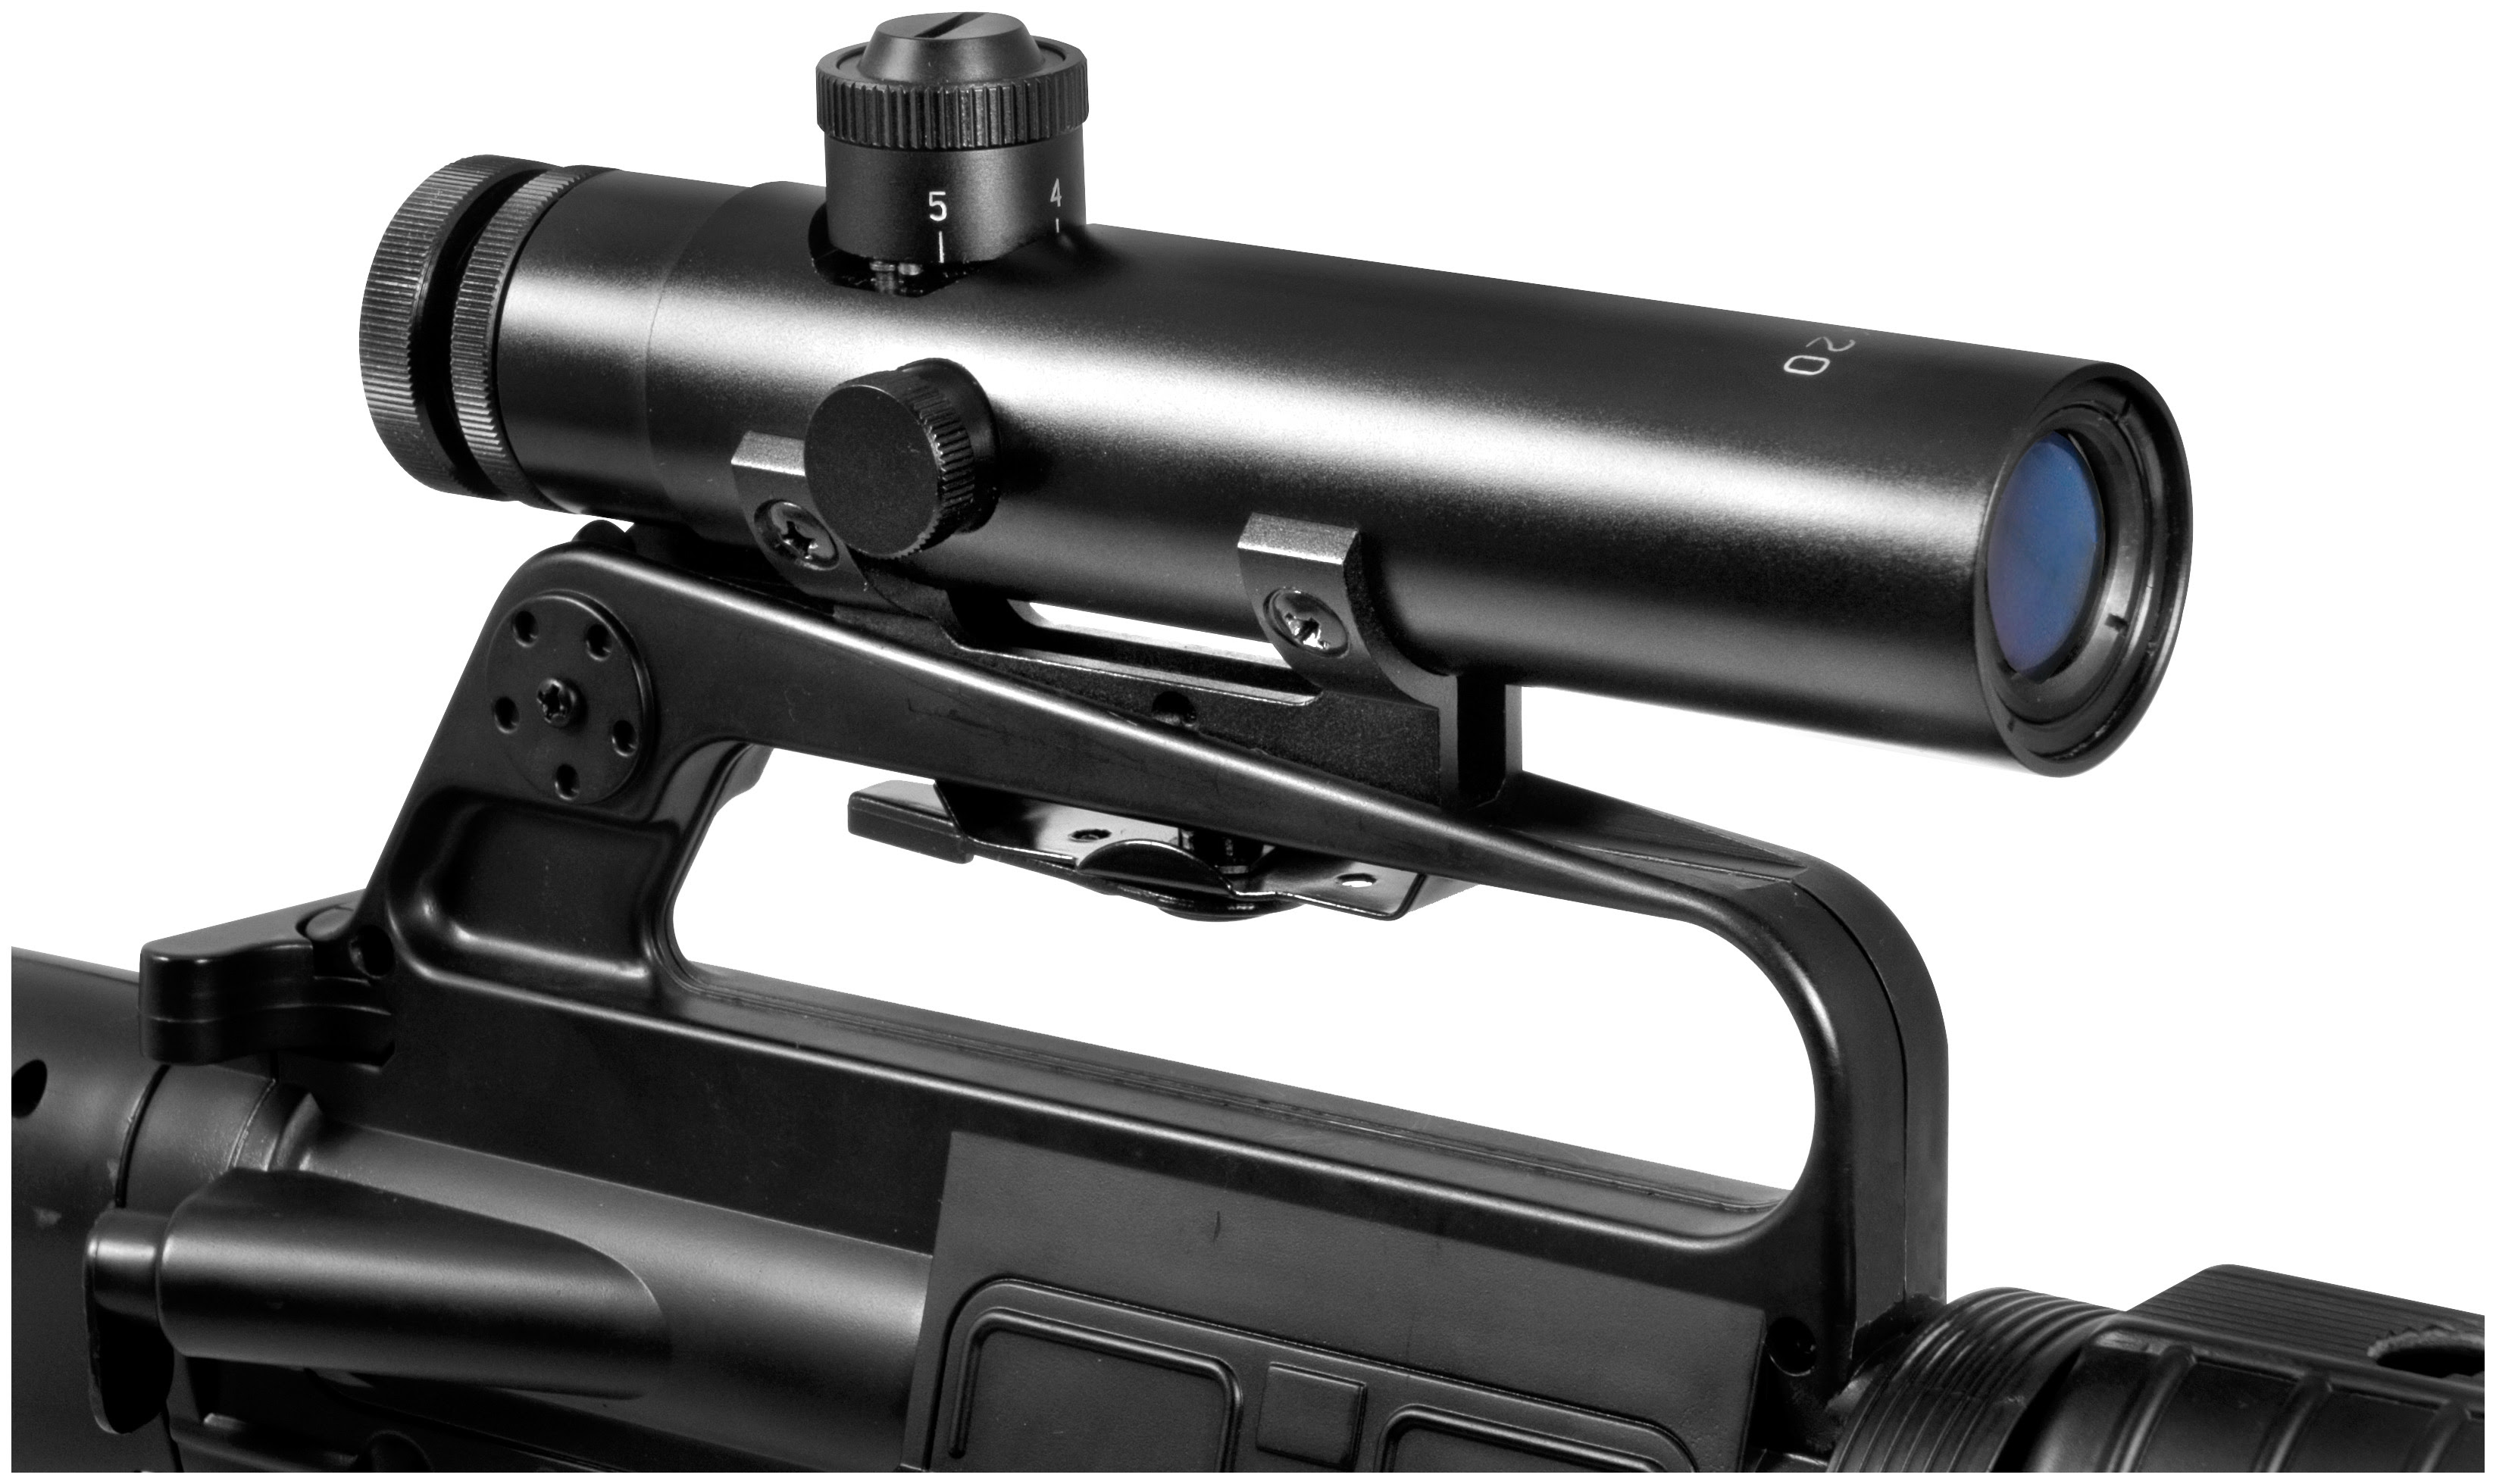 Barska 4x20 mm M16 Electro Sight Scope, Matte Black